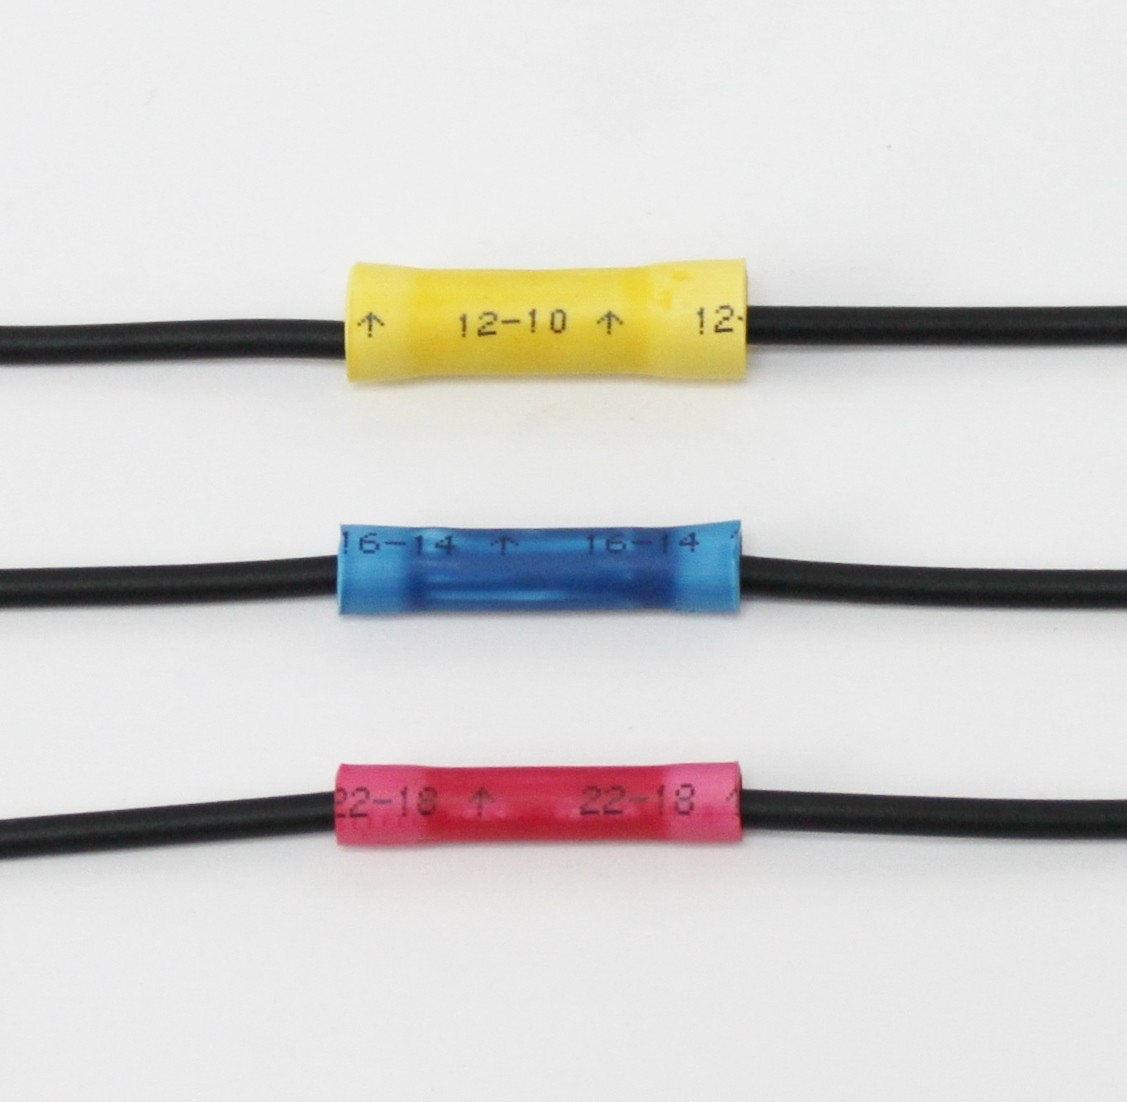 Vinyl Insulated Butt Splice Connectors (22-18) | Nelco Products